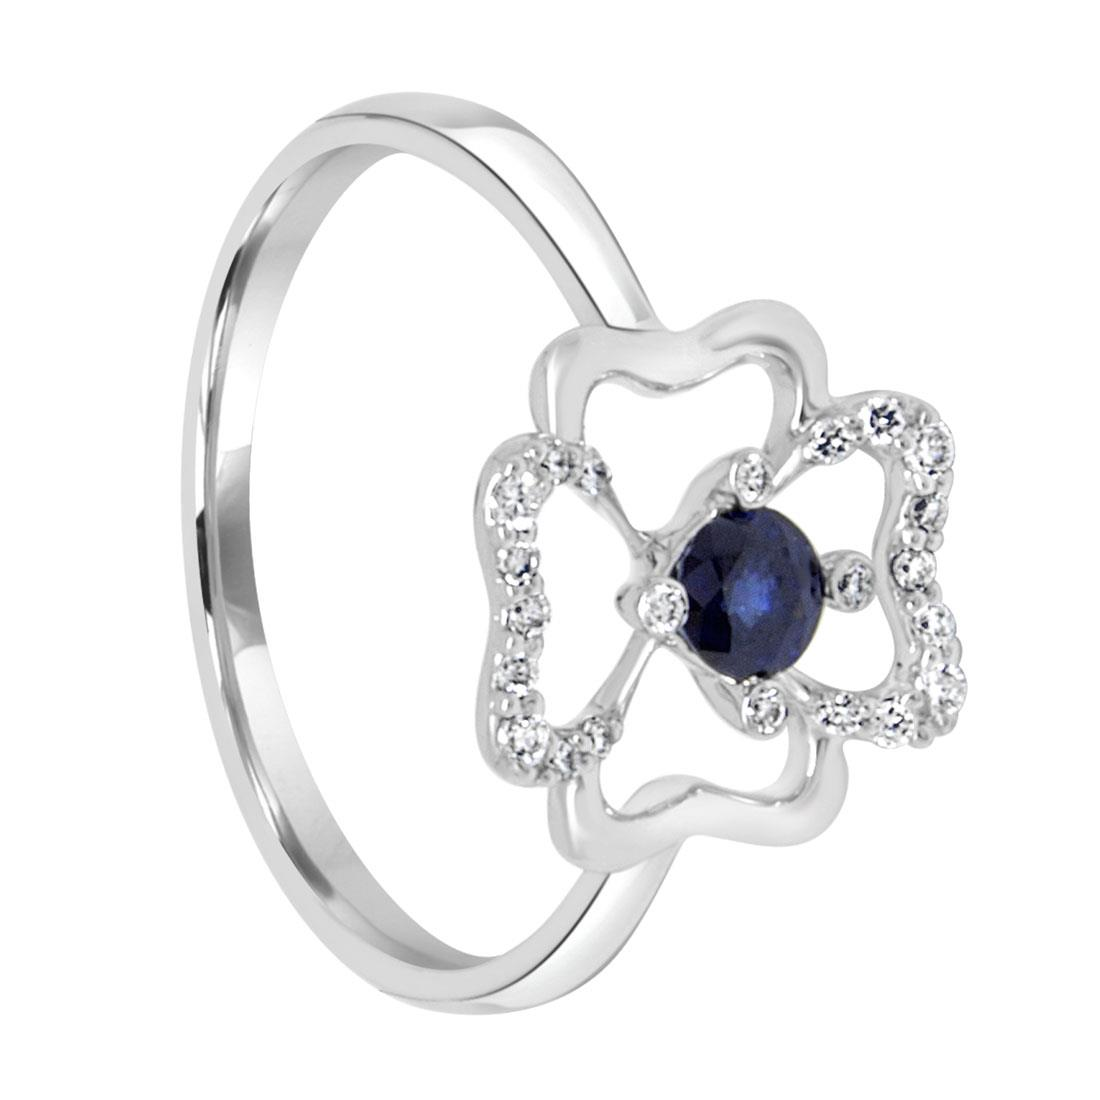 Anello con diamanti e zaffiro - BLISS